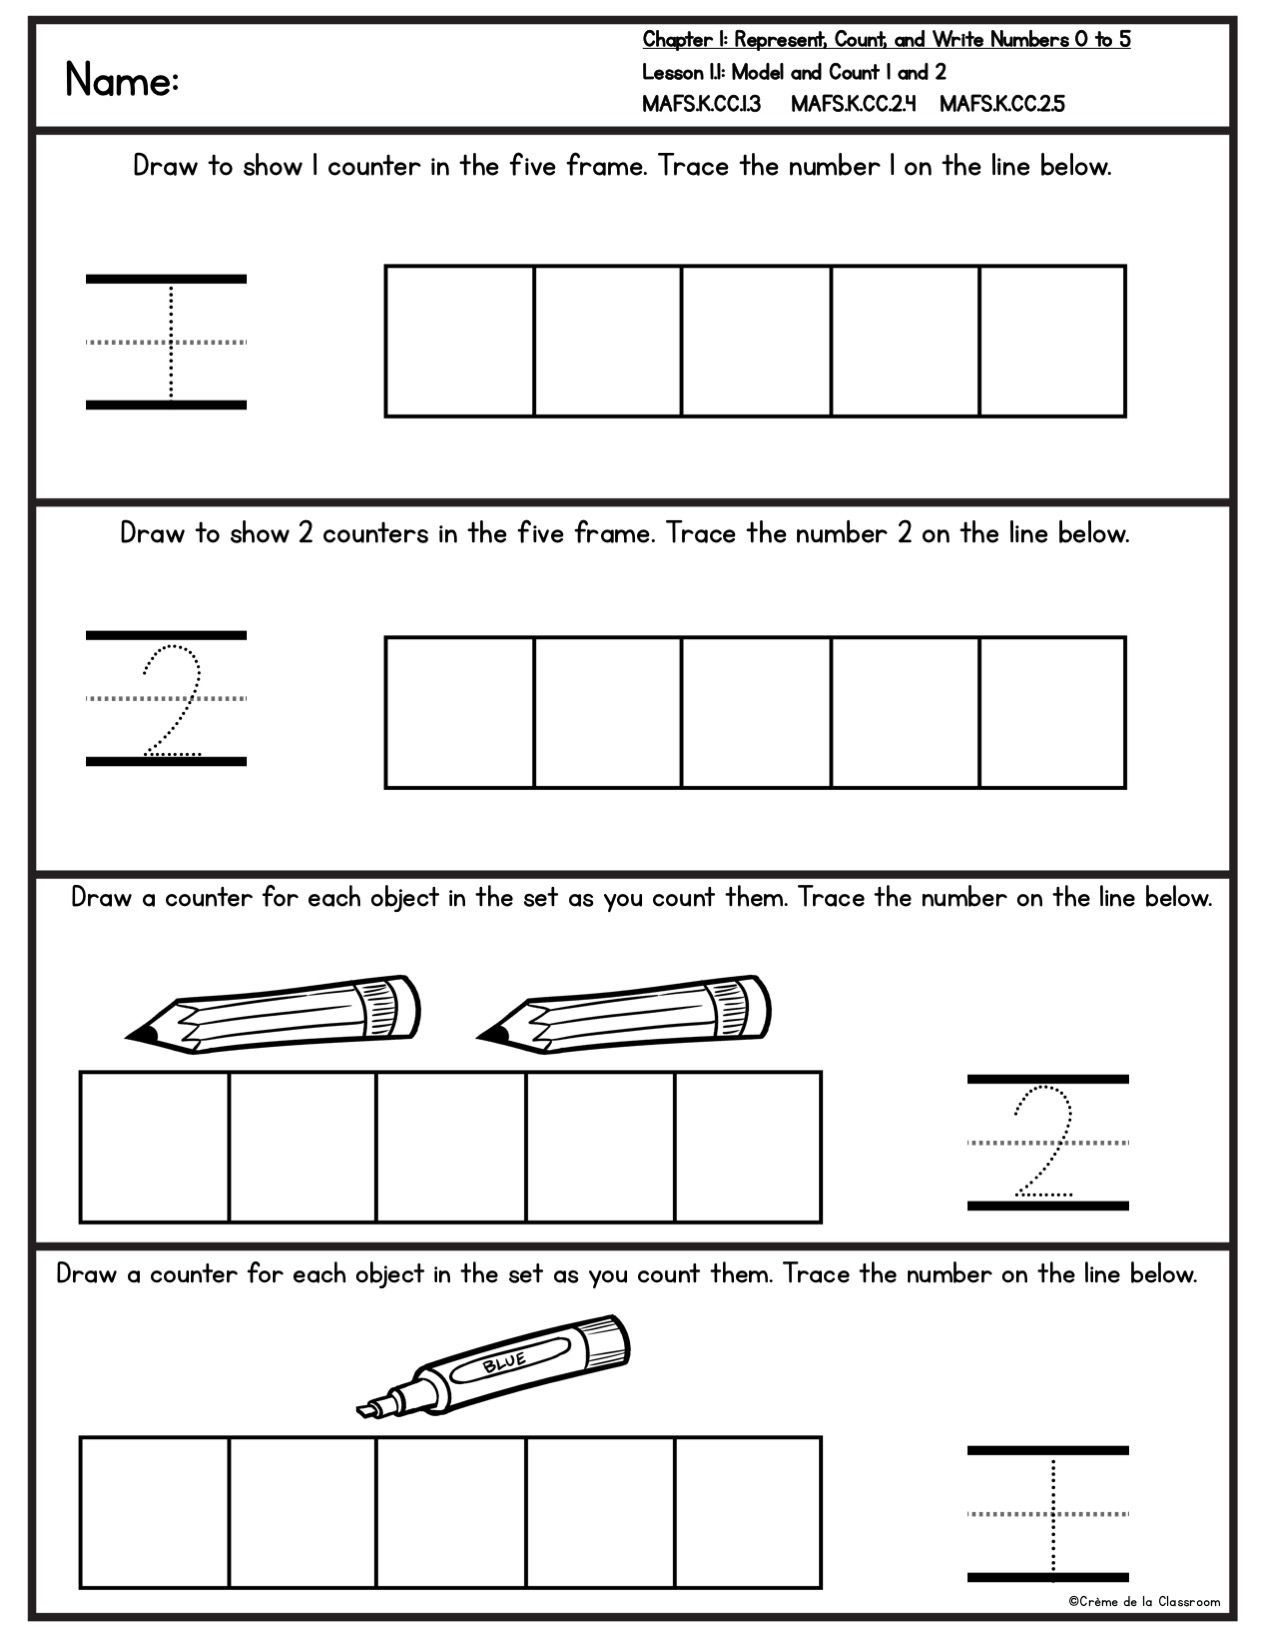 Florida Mafs Practice Pages For Go Math S Teacherspayteachers Product